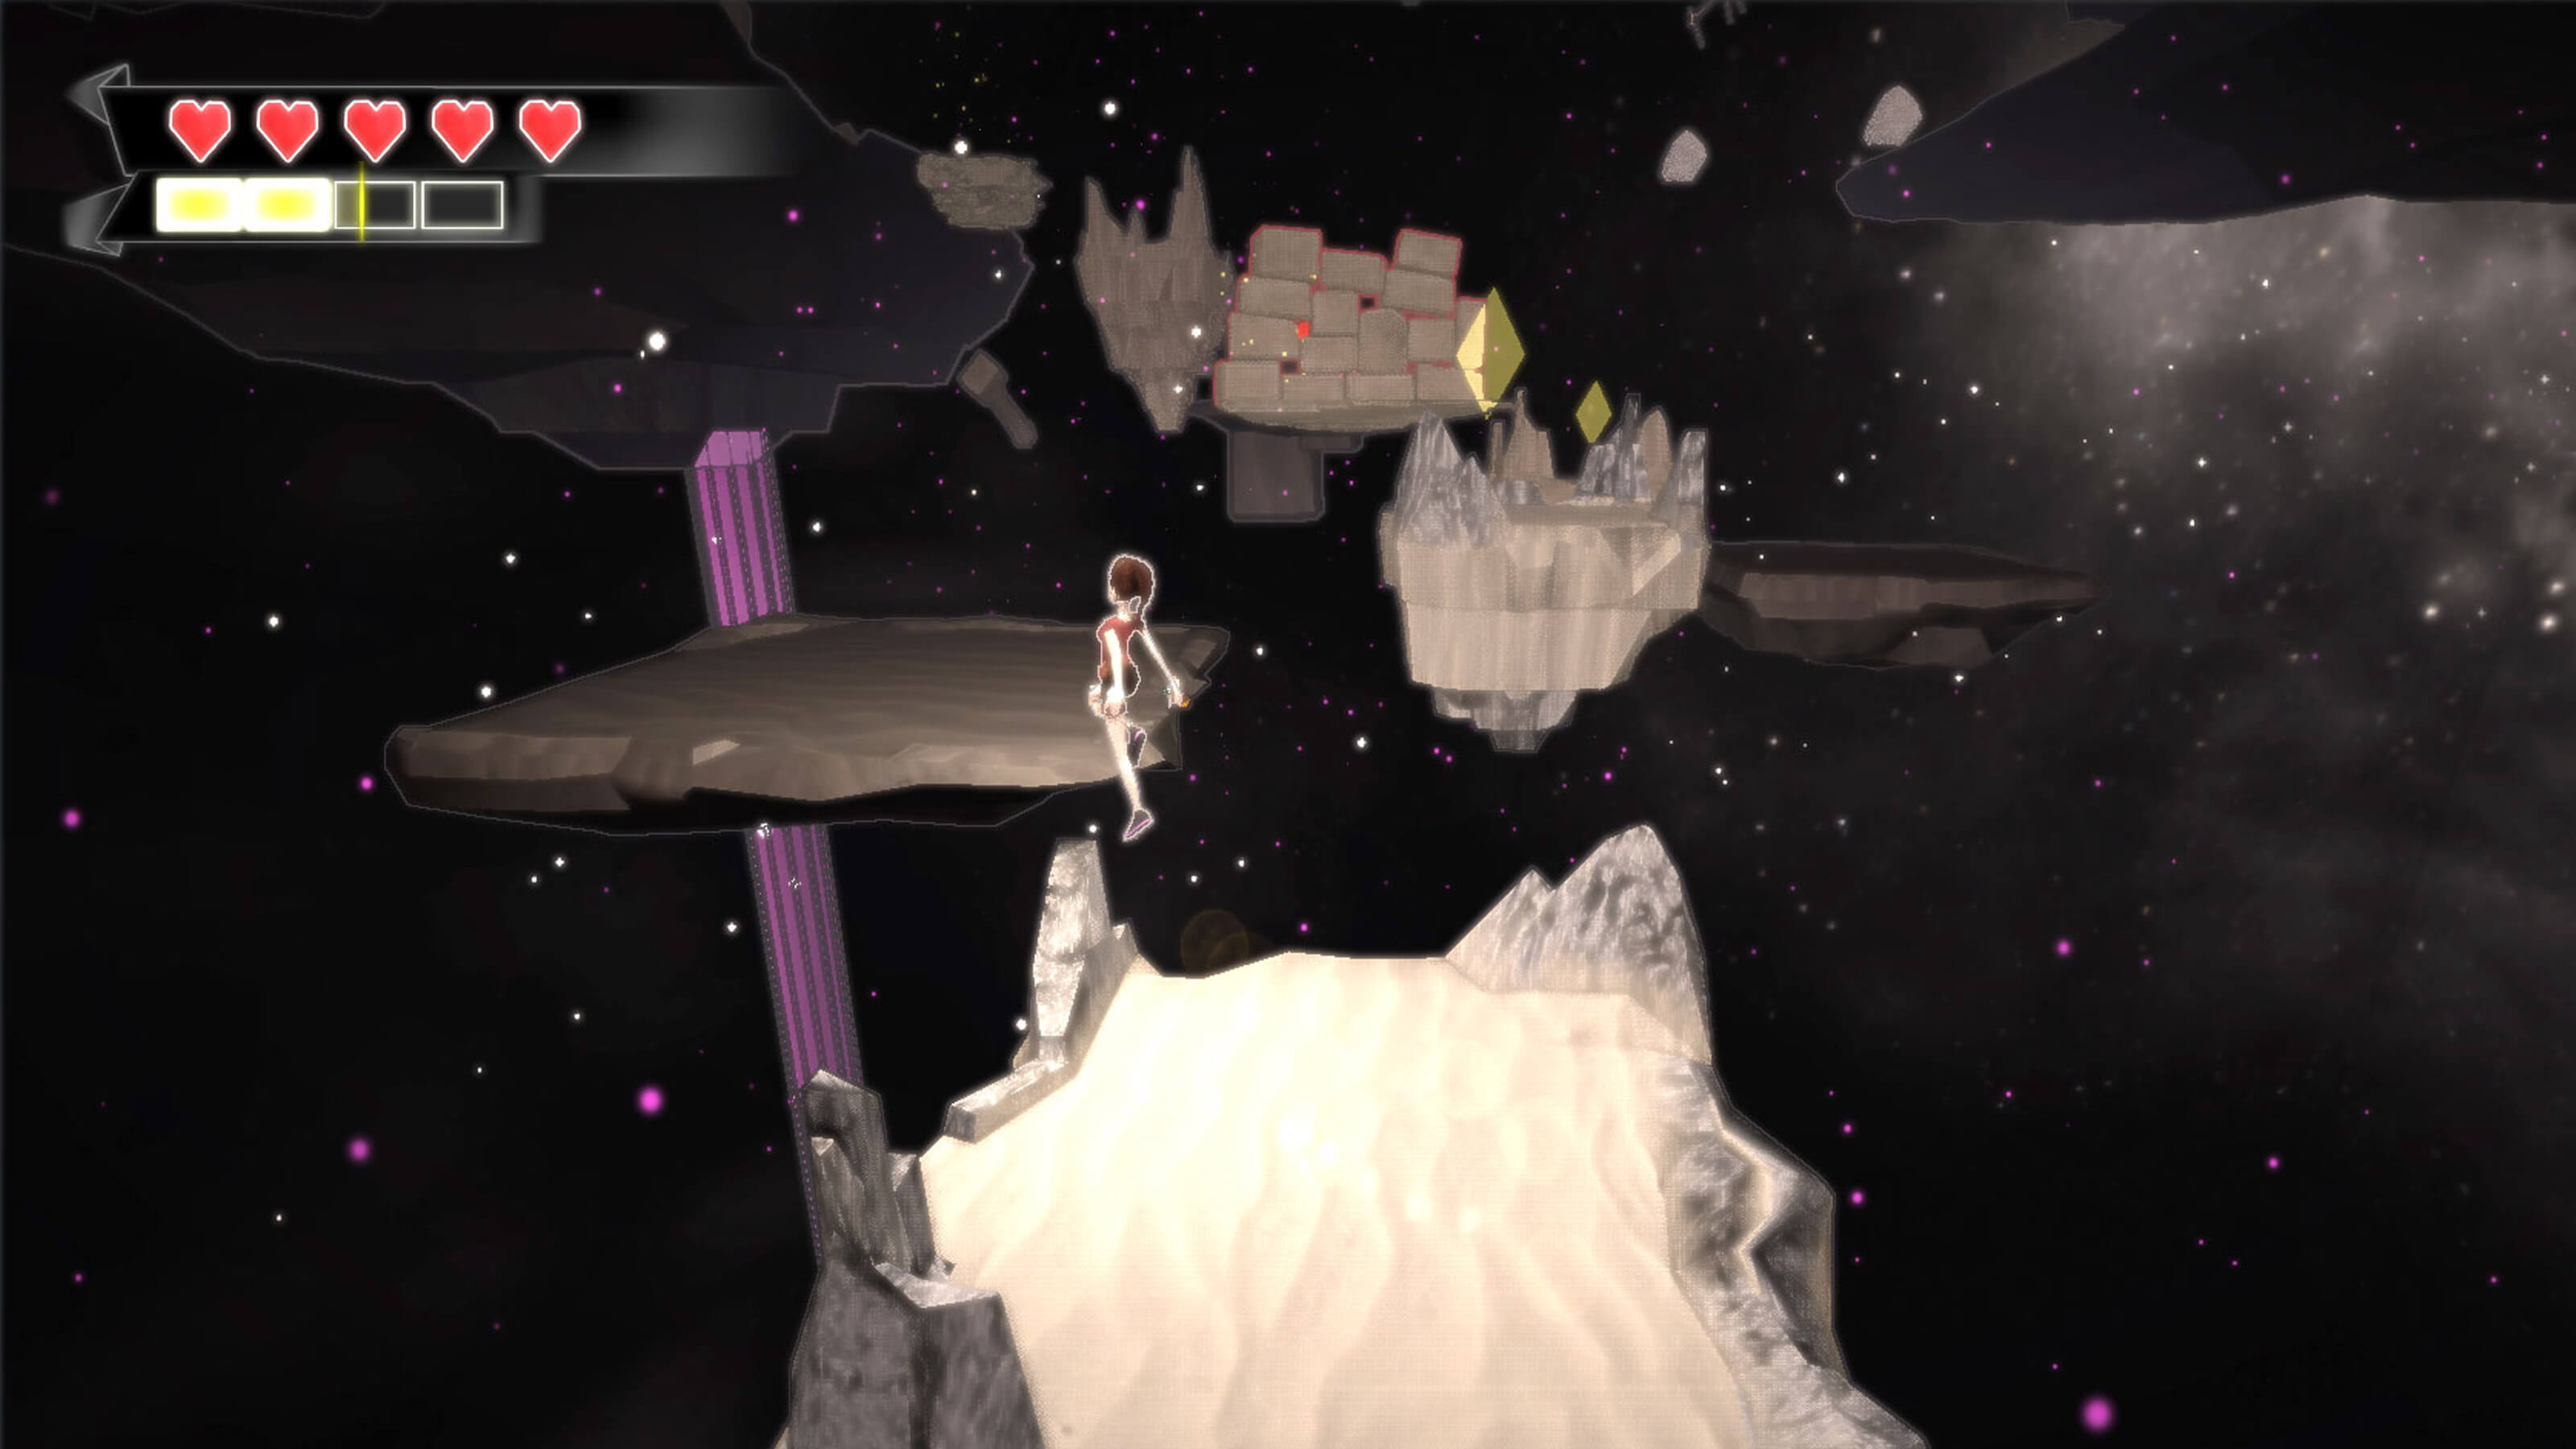 The player's character jumps from a sandy platform floating in space across a large void to another platform